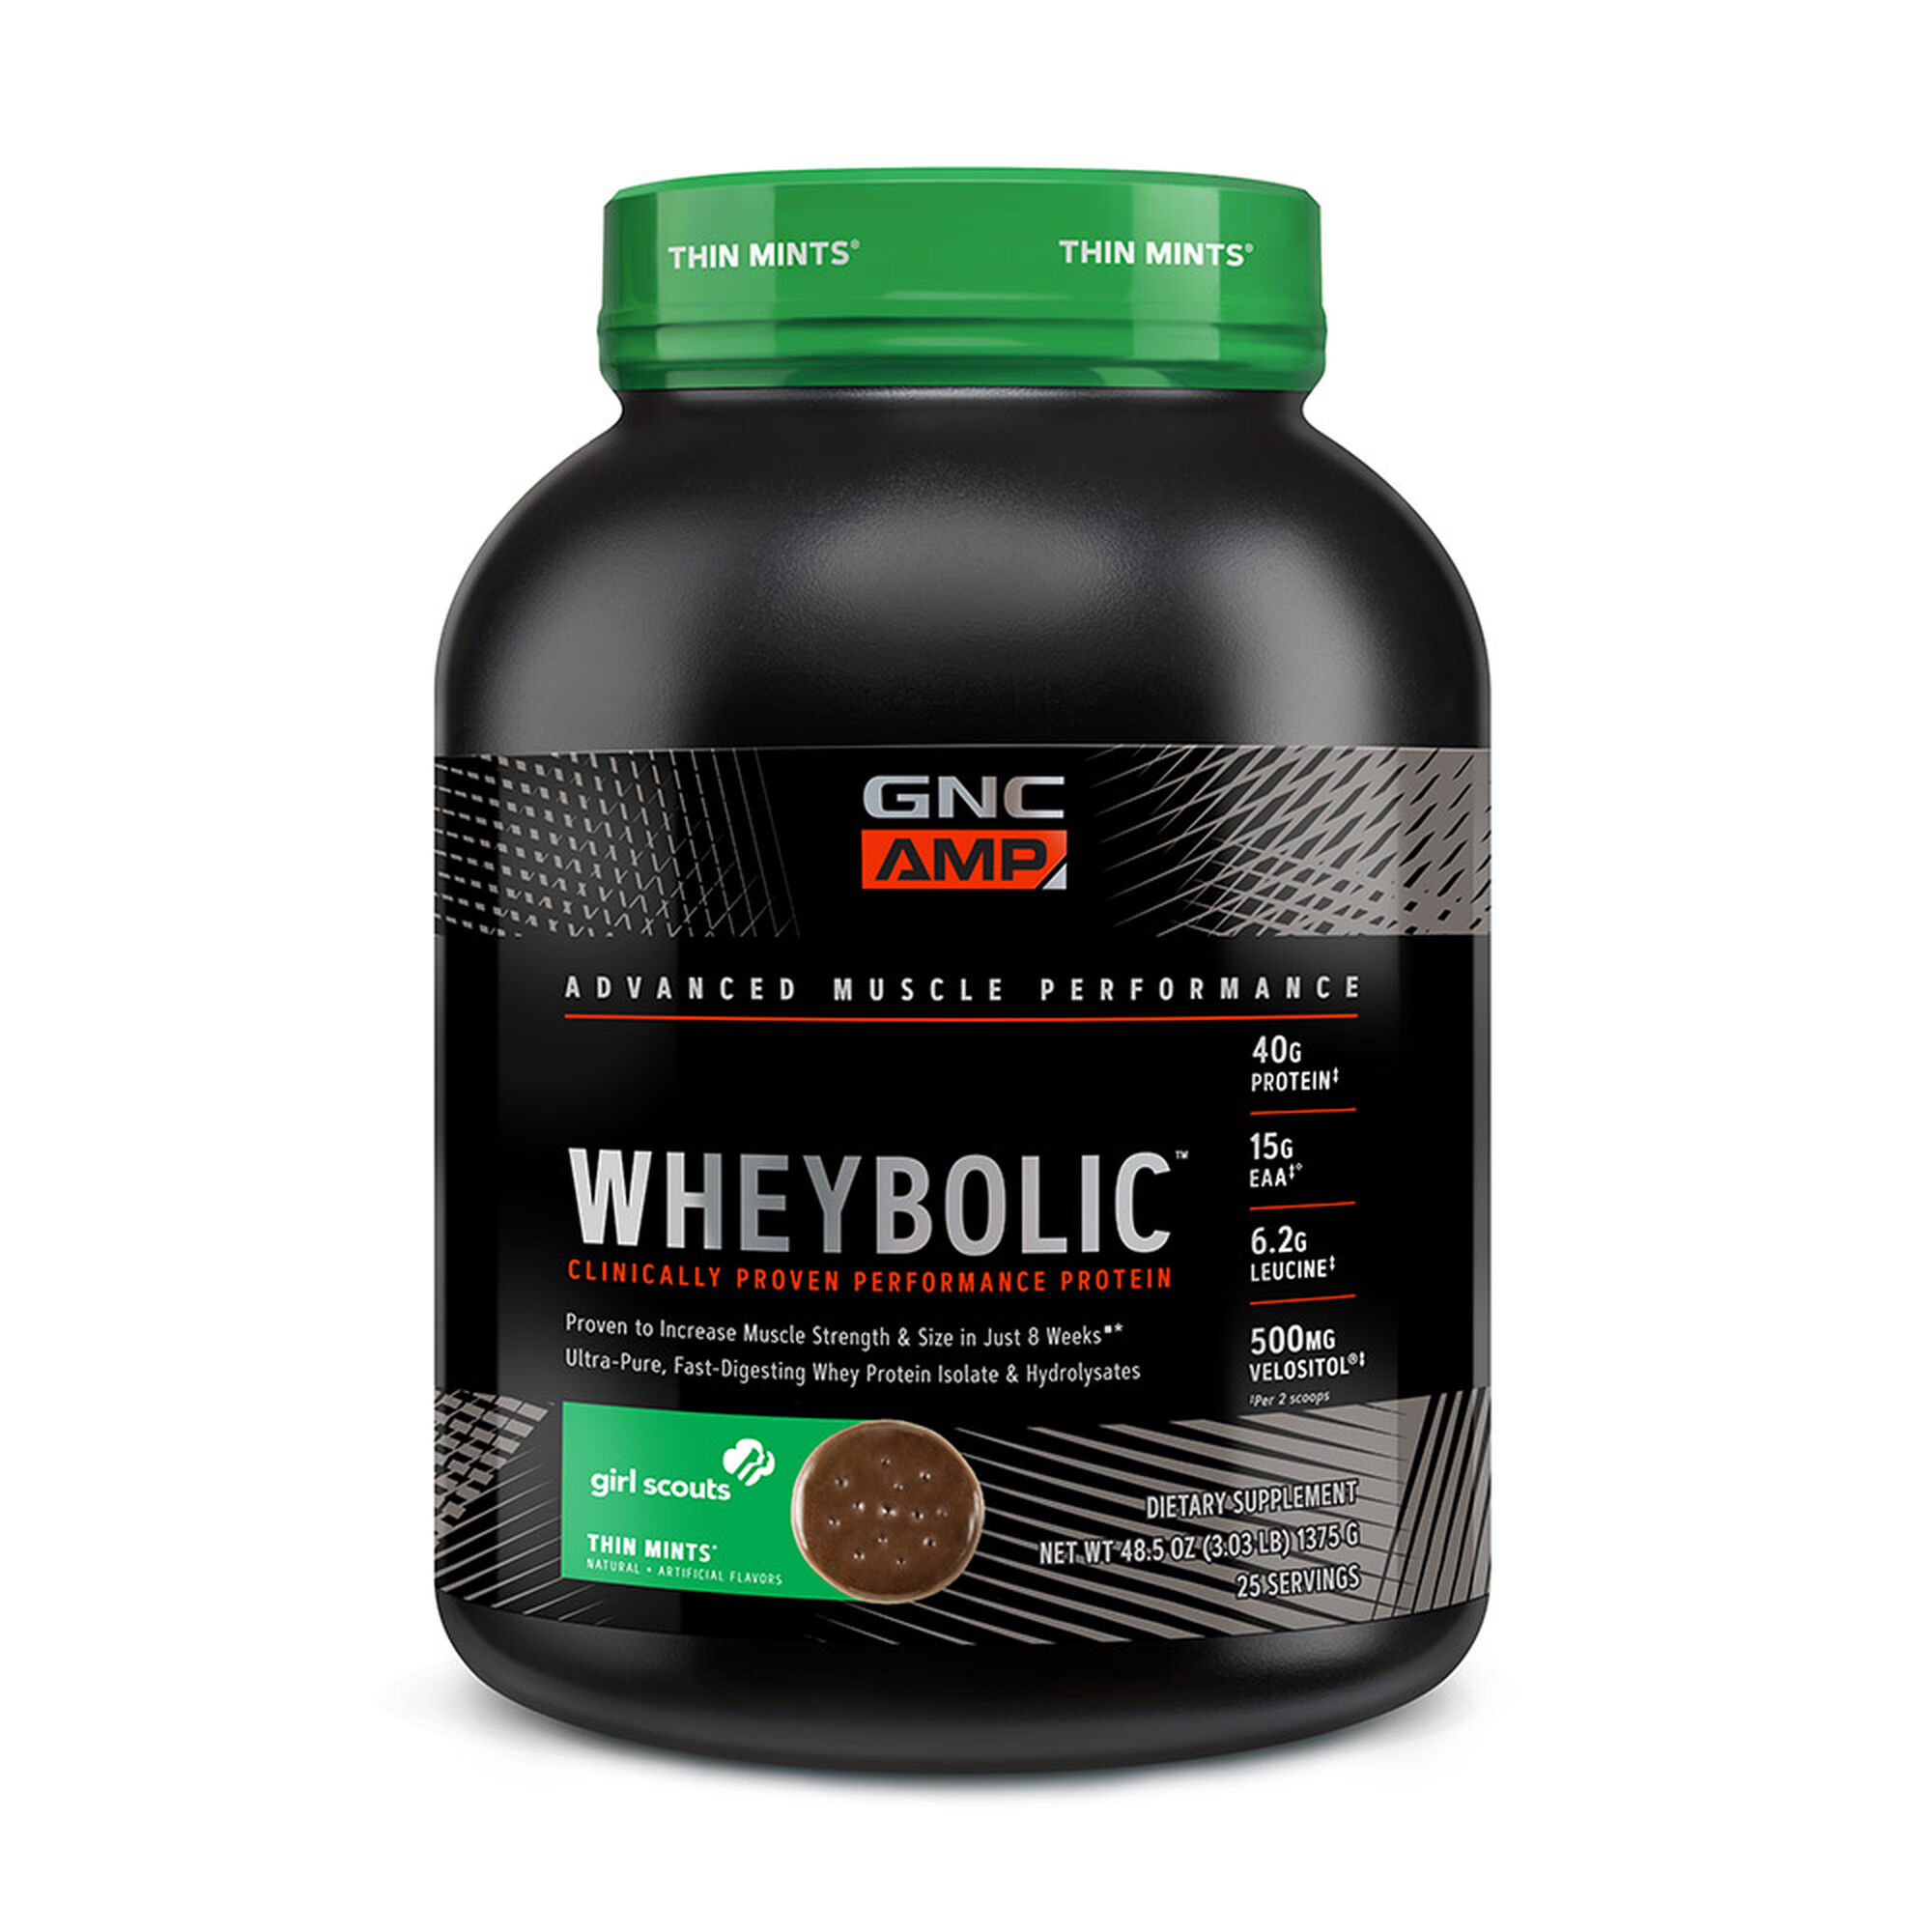 Gnc Amp Wheybolic Whey Protein Powder Girl Scouts Thin Mints 25 Servings Gnc,Dog Seizures Signs